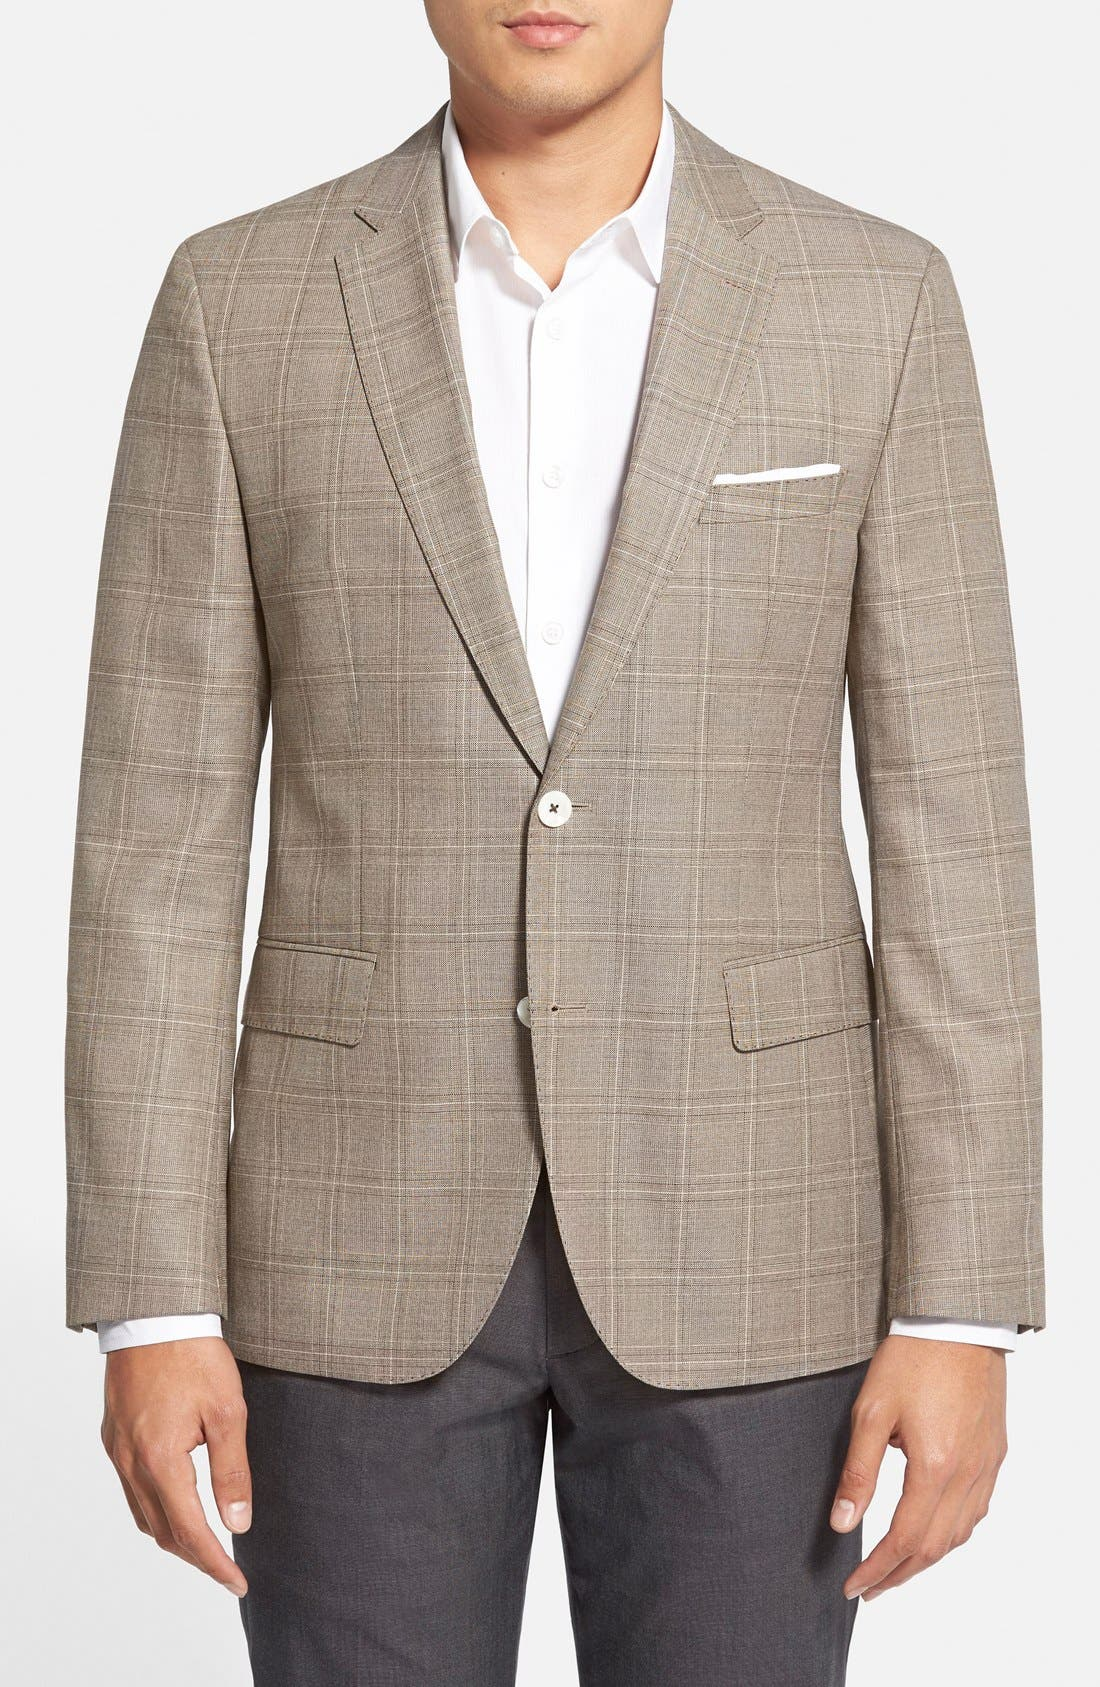 Main Image - BOSS 'Jarett' Trim Fit Plaid Wool Blend Sport Coat